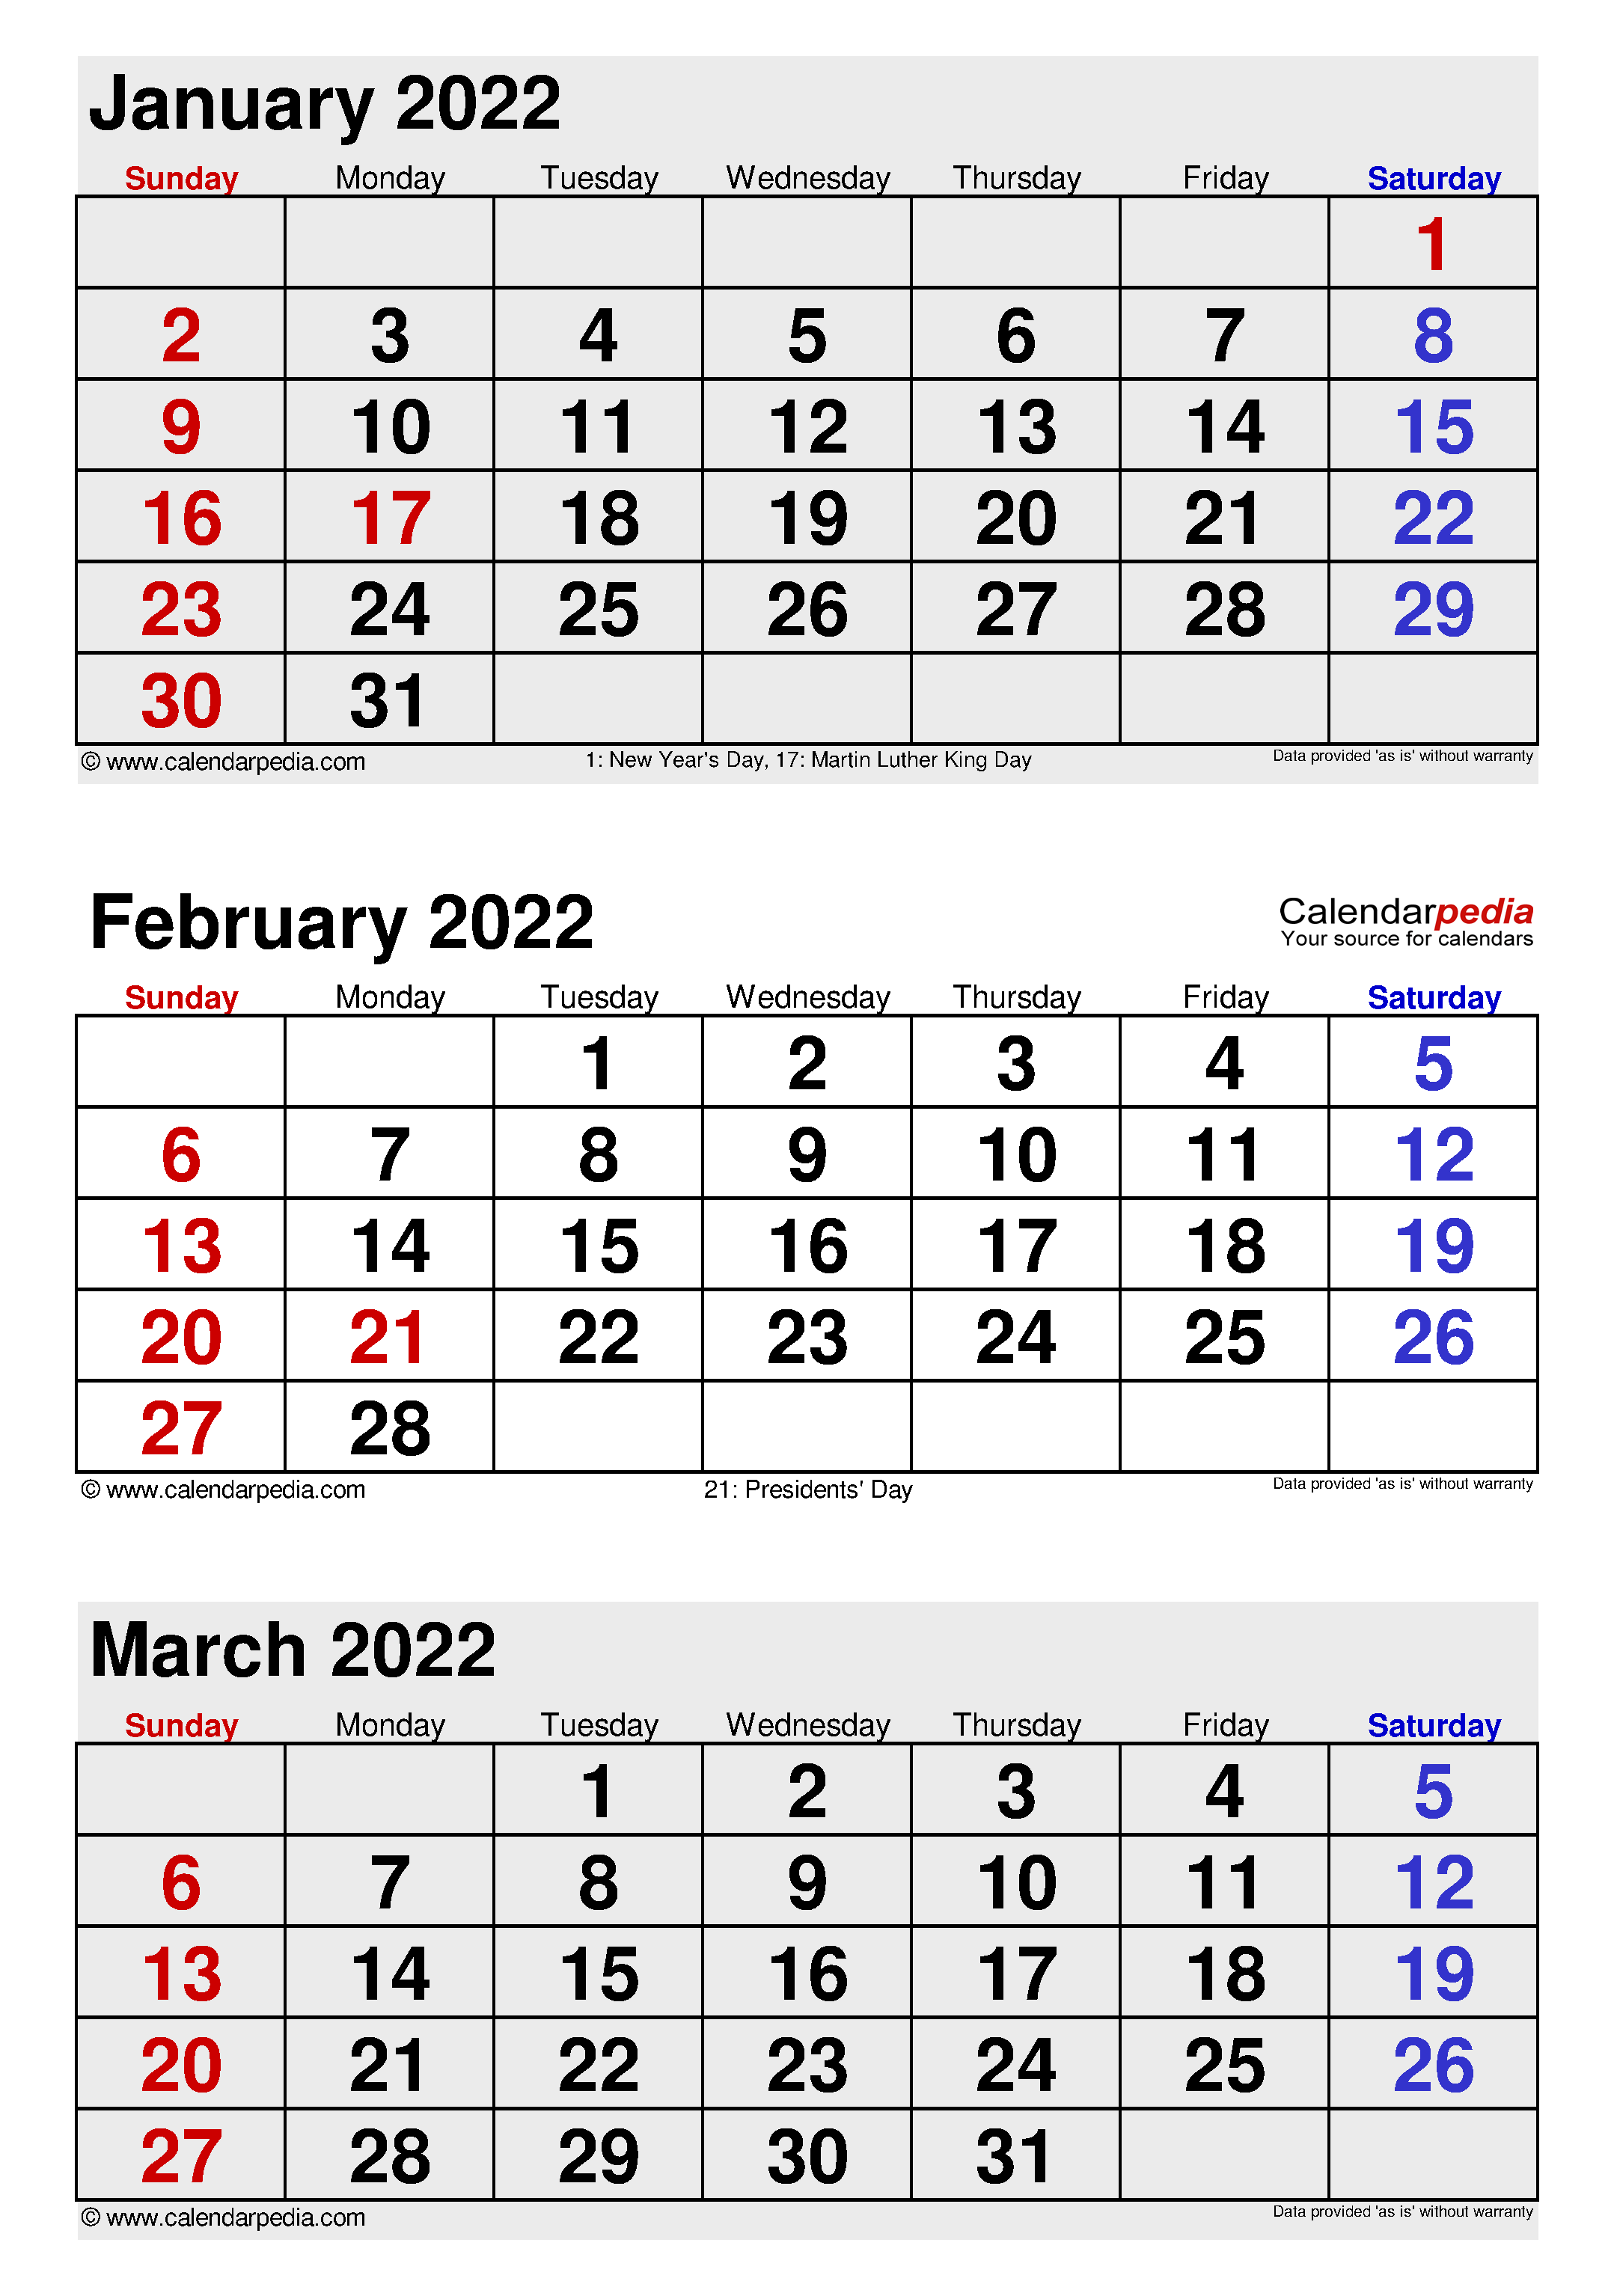 February 2022 Calendar   Templates For Word, Excel And Pdf Within Printable Februaryy 2022 Calendar